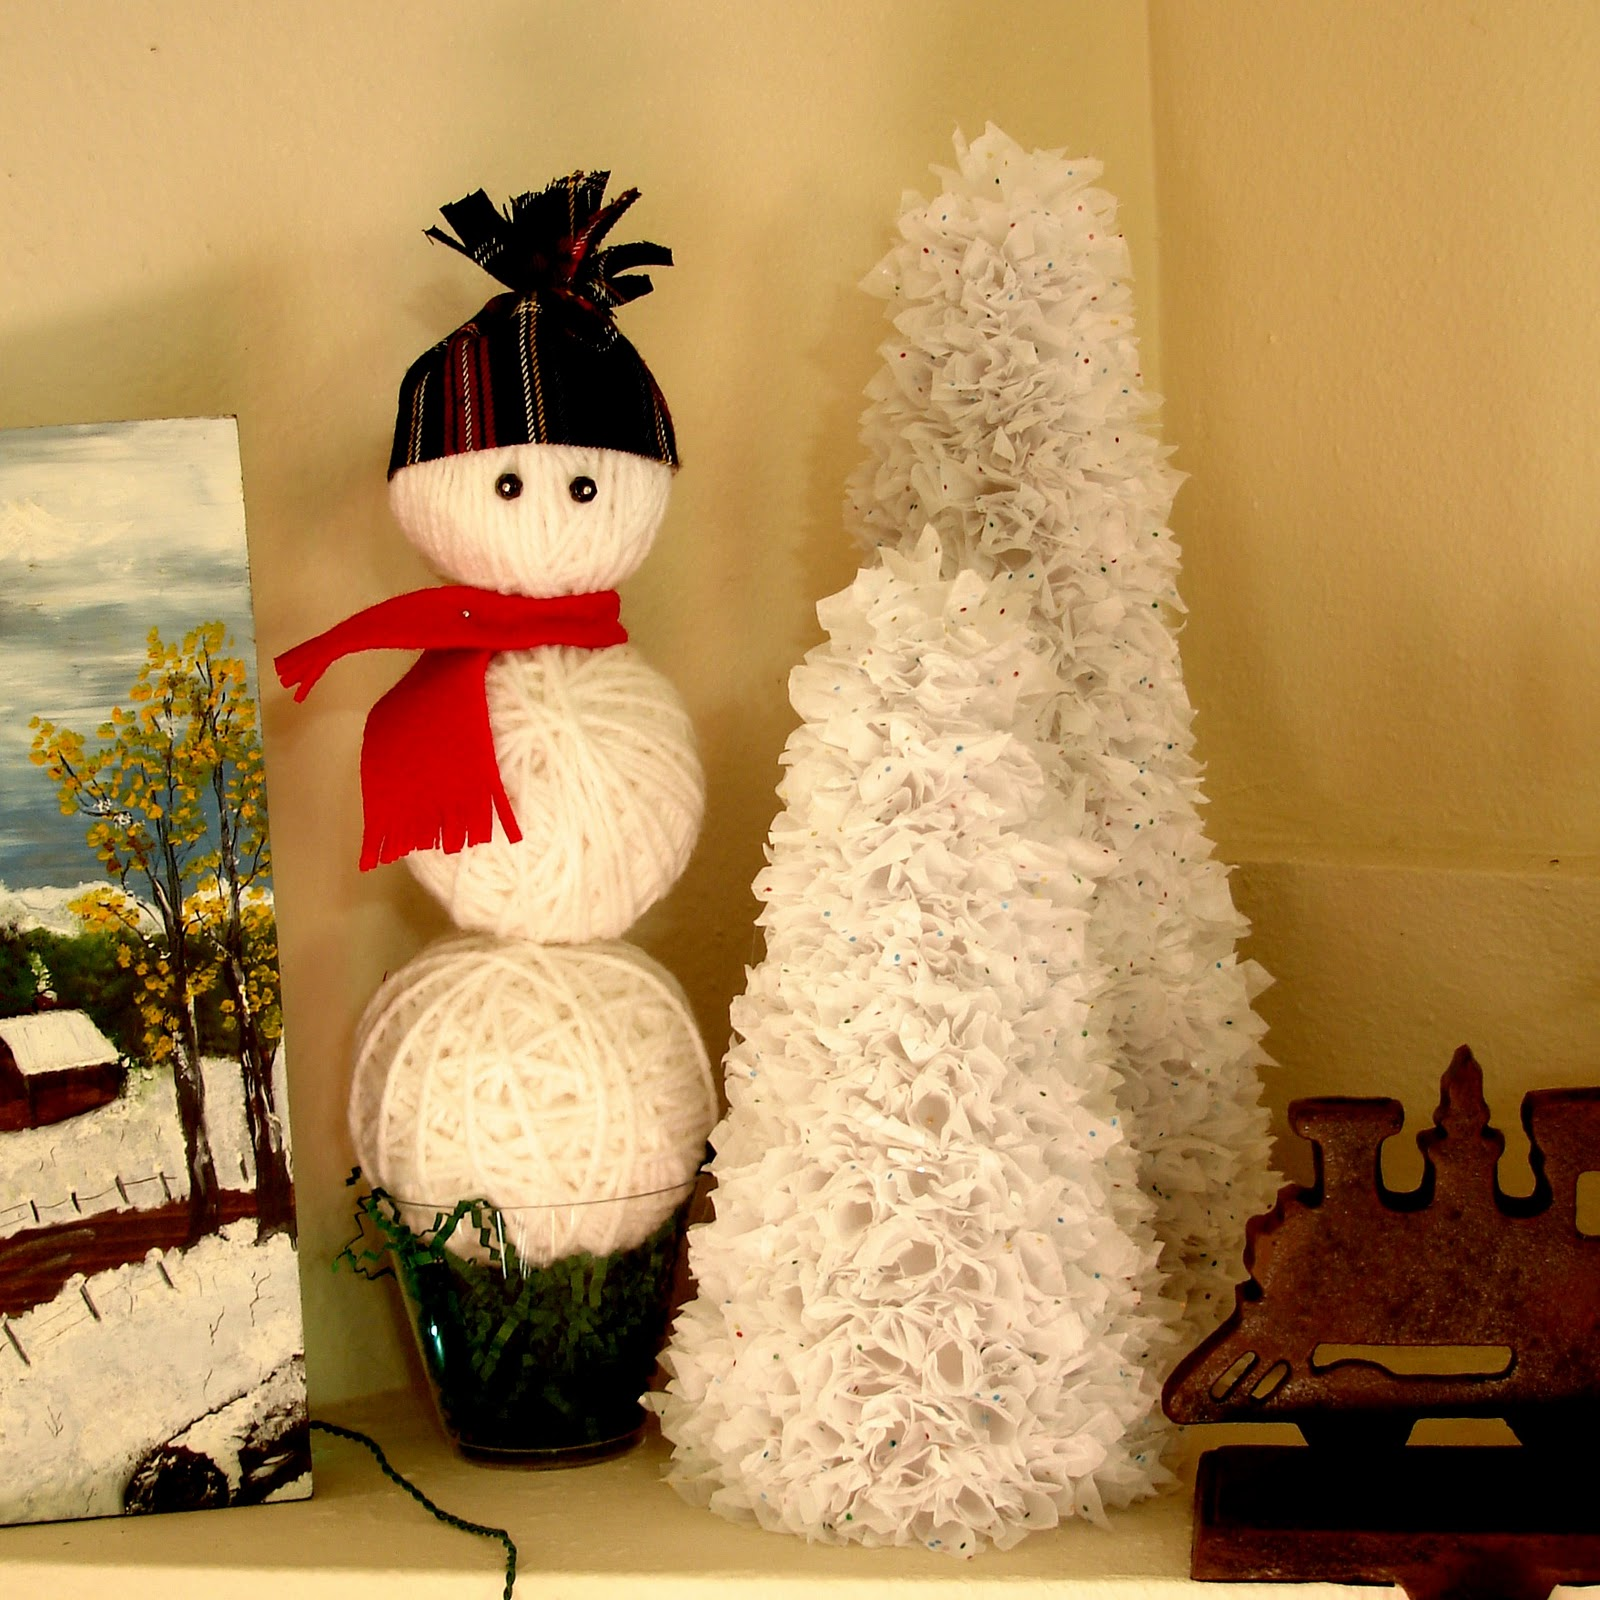 Apple loves orange crafting christmas my mantel and new projects - How to make a snowman out of wood planks ...